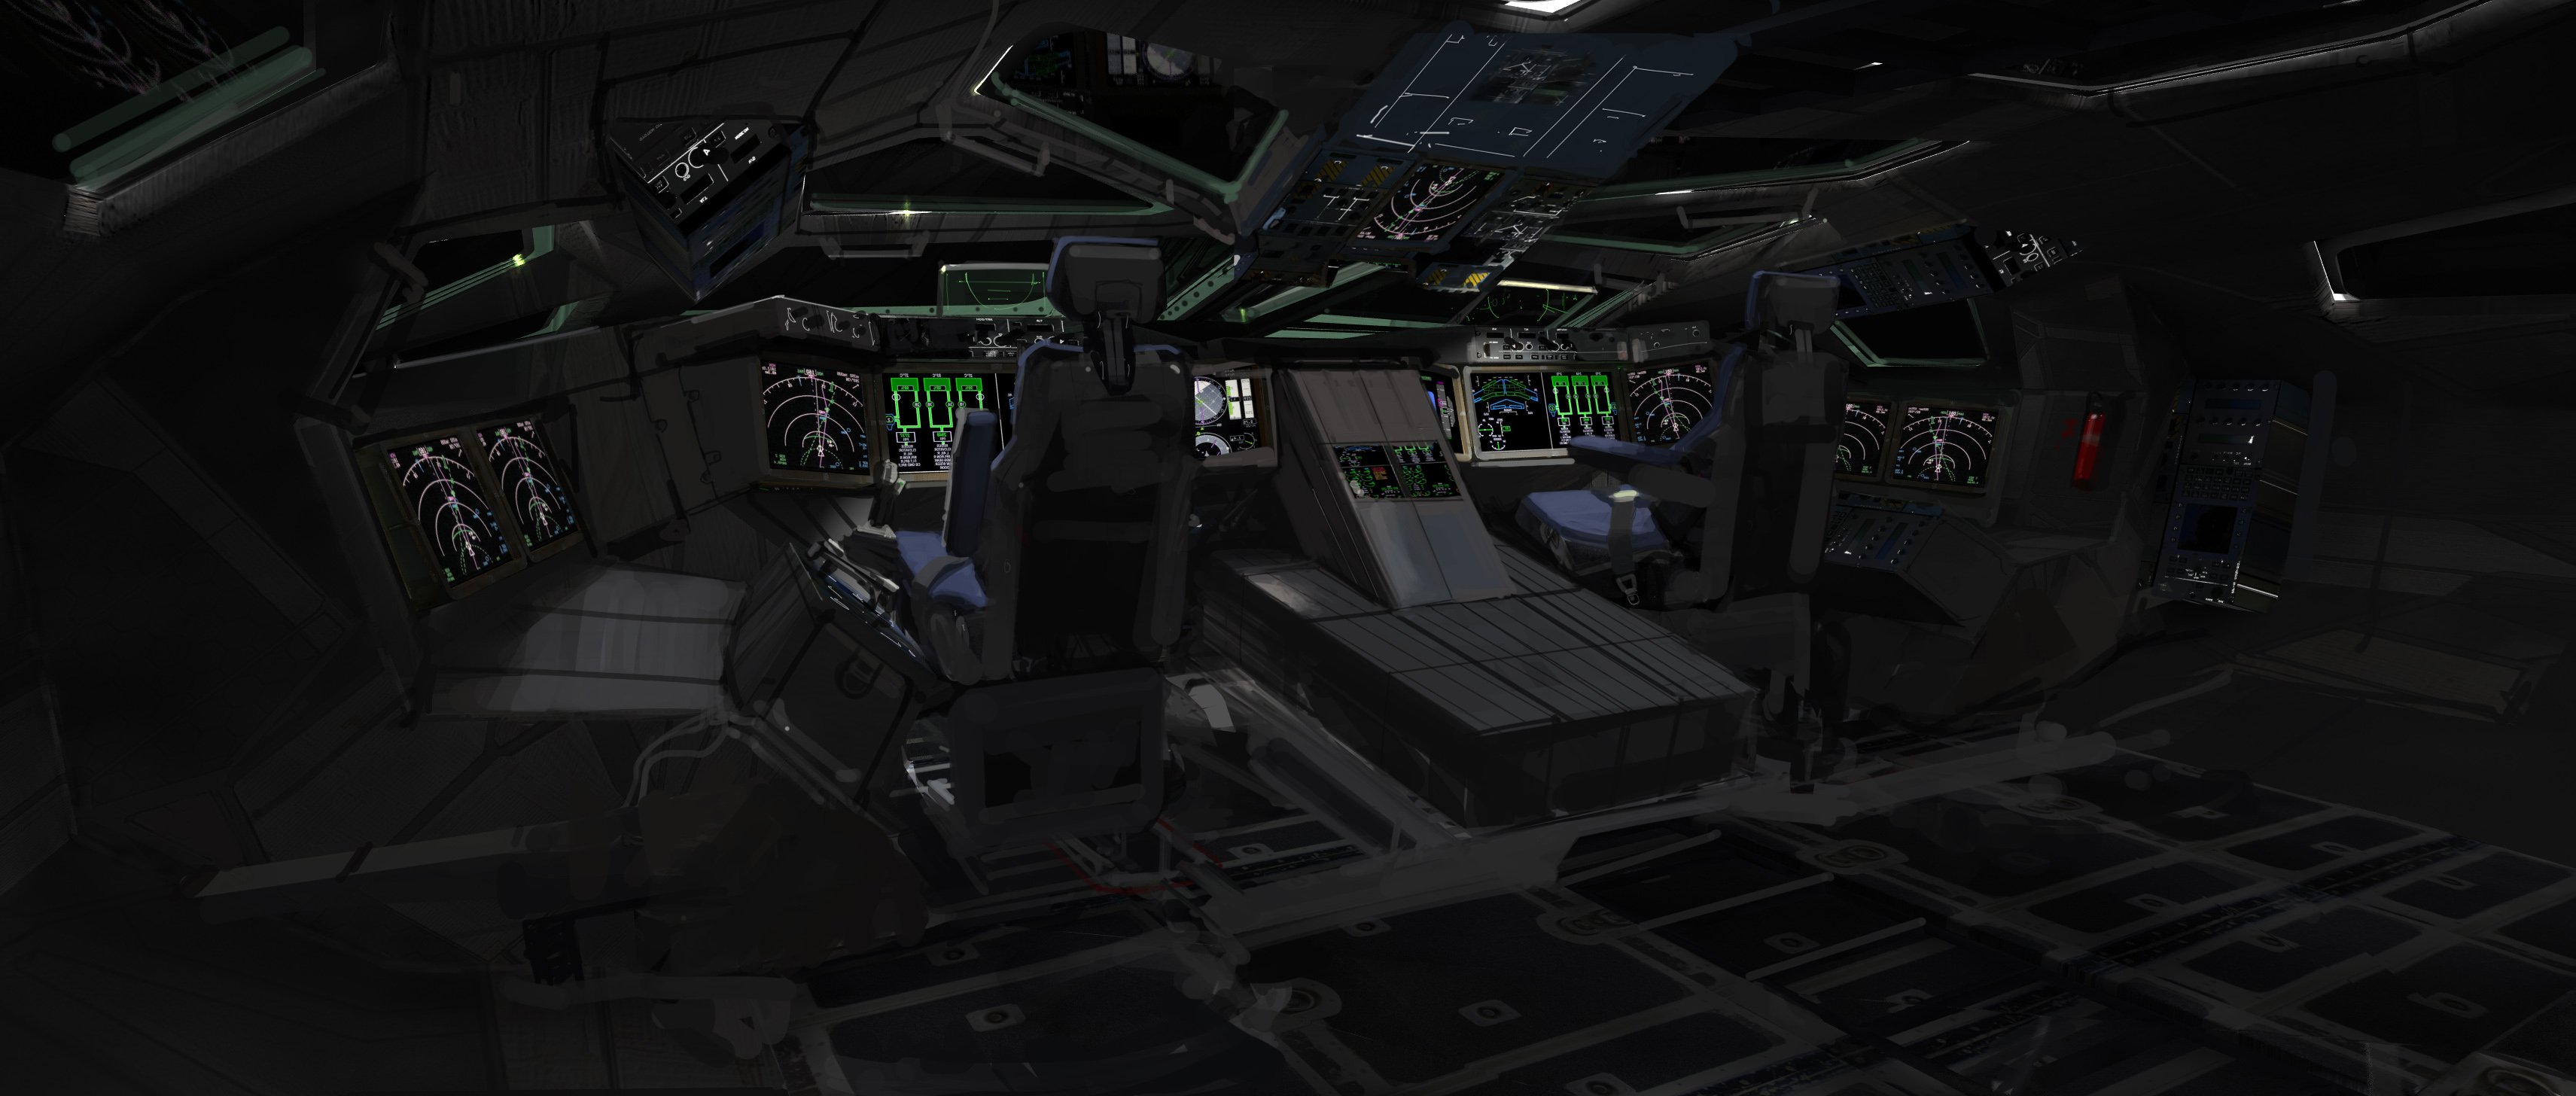 ranger_cockpit2_tars_in_place